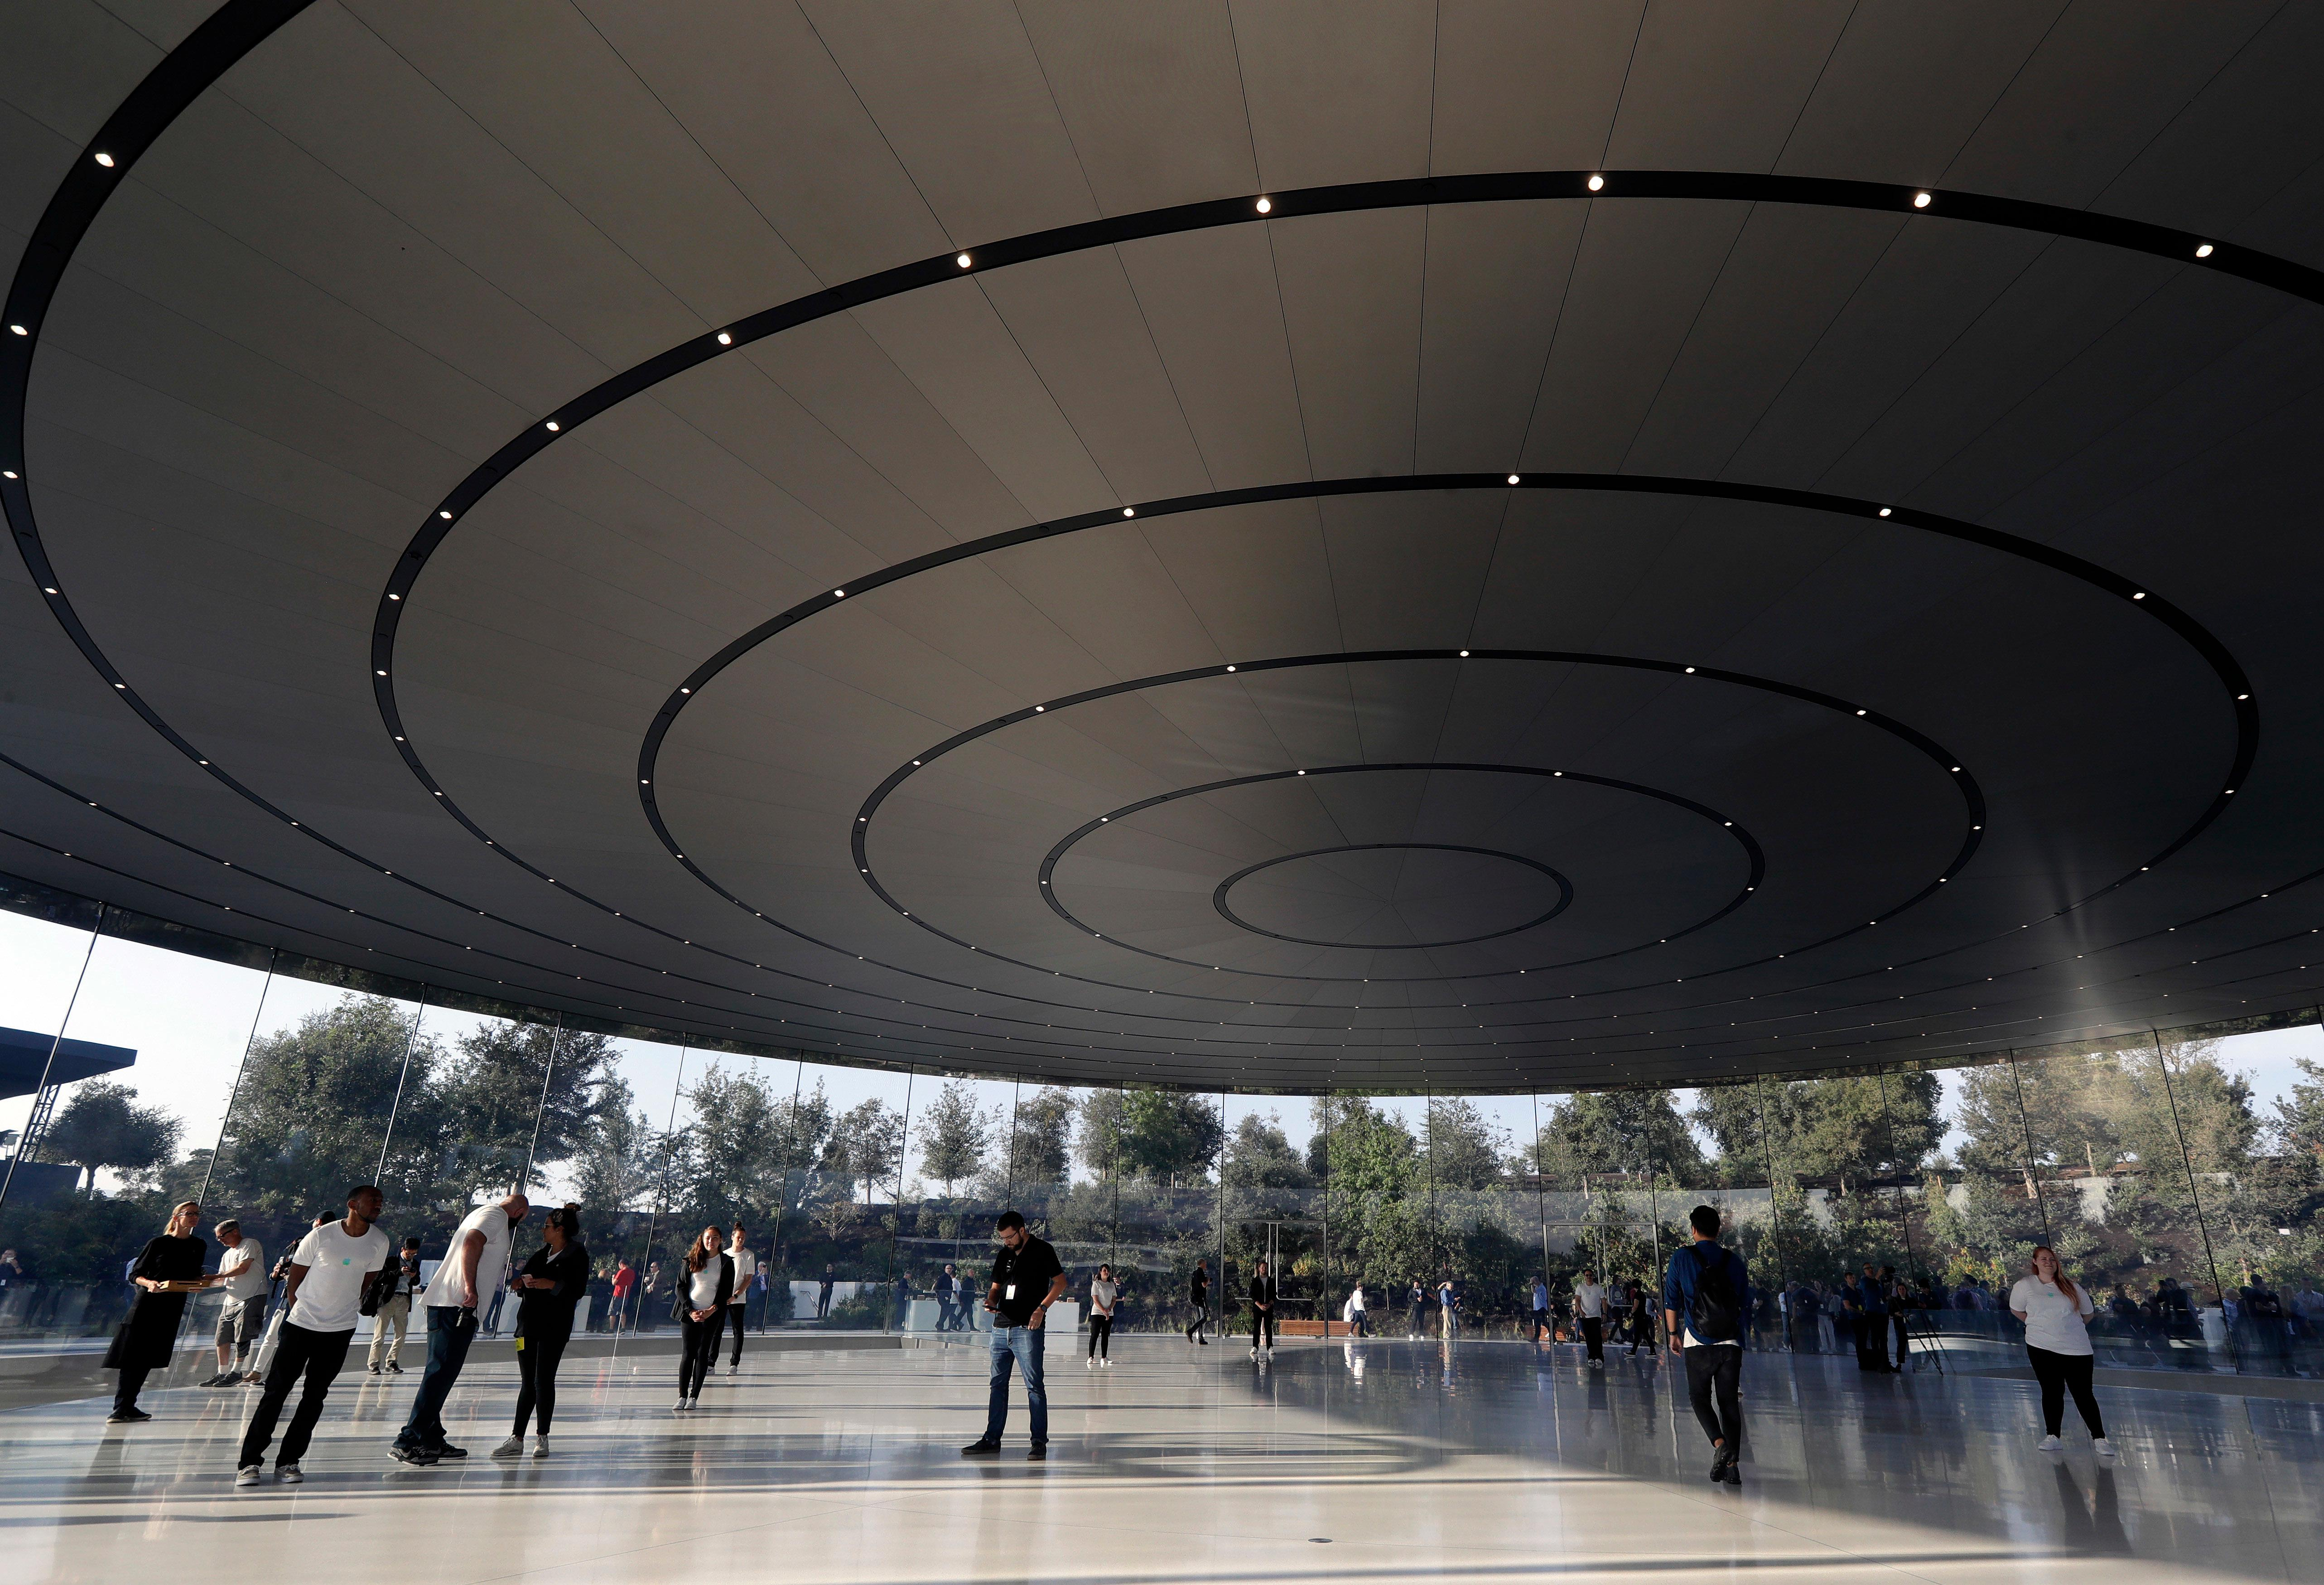 People arrive for a new product announcement at the Steve Jobs Theater on the new Apple campus, Tuesday, Sept. 12, 2017, in Cupertino, Calif. (AP Photo/Marcio Jose Sanchez)